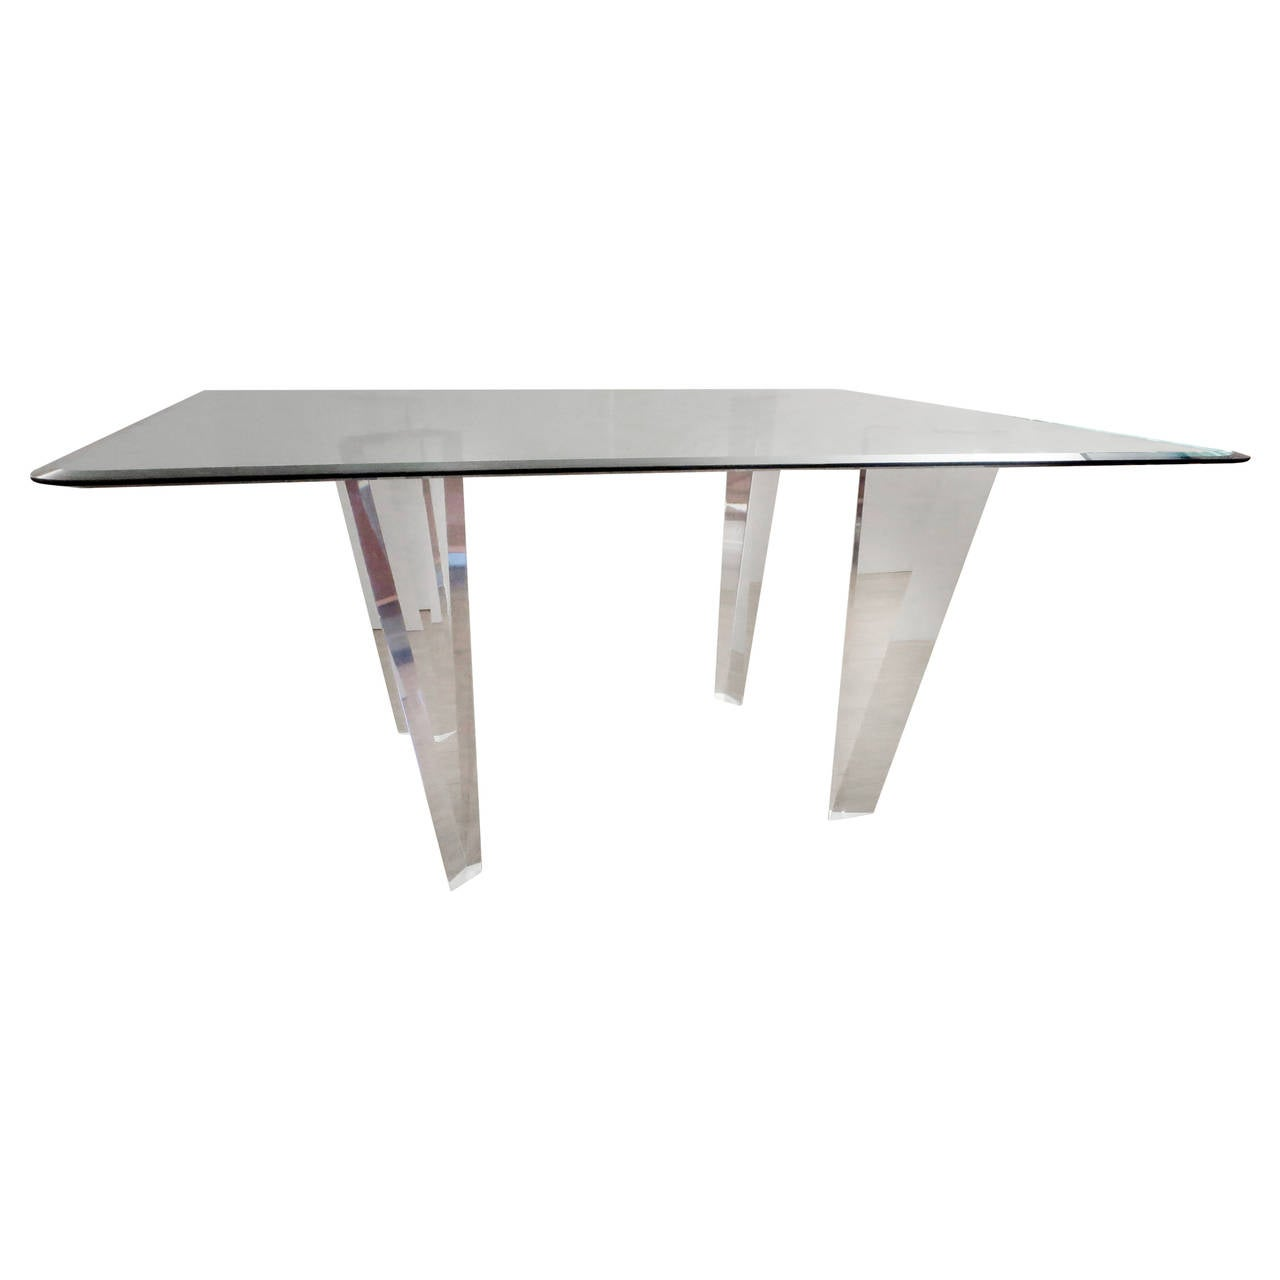 Roche et bobois table roche bobois new collection a - Table basse roche bobois ...